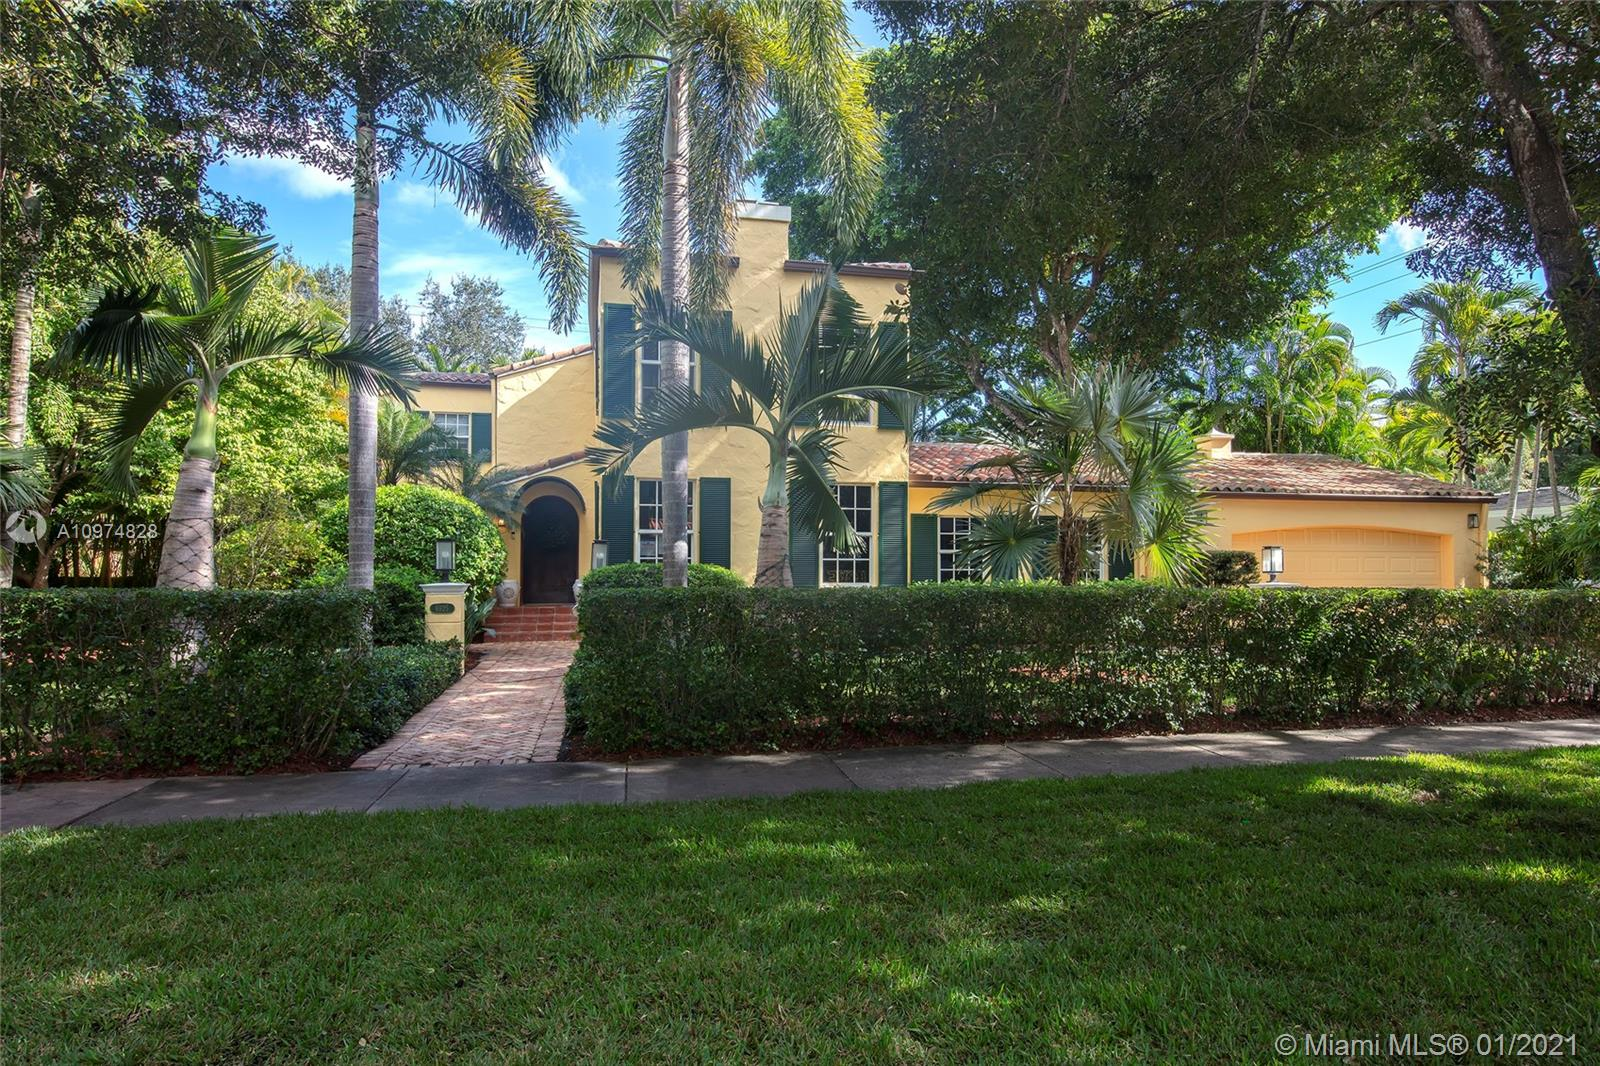 This beautifully restored 1925 Spanish villa is a fine example of historic Coral Gables charm renovated for every modern comfort. This property sits on a 12,500 sqft lot shaded by tall trees & surrounded by tropical plants. The house is 2-story 3/3.5 + 1/1 guest quarters & boasts a fully updated kitchen w/Subzero fridge & Wolf stove, renovated bathrms, oak floors, Florida rm, playrm & 2 wood burning fireplaces. The pool w/waterfall, gardens & summer kitchen are perfect for outdoor entertaining. Impact windows, 2014 roof, full house generator, heated salt-water pool, built-in bbq & 2-car garage. This home is in ideal location, close to shopping, dining & within walking distance to Sunset Elementary School. 